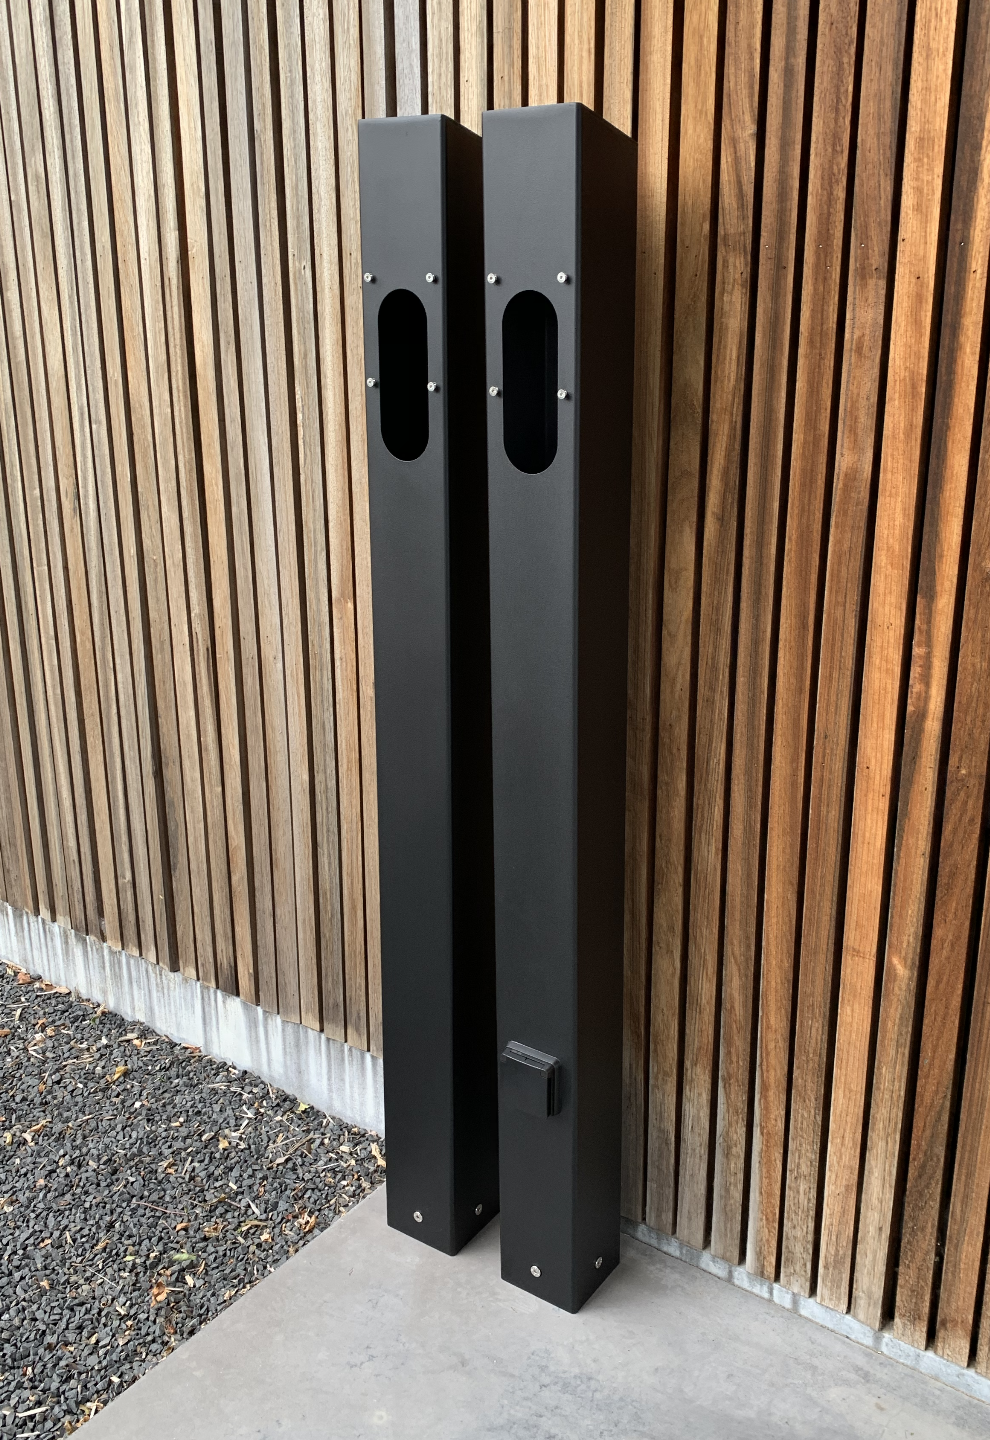 Support de charge pour le connecteur mural Tesla et l'EVBox Elvi